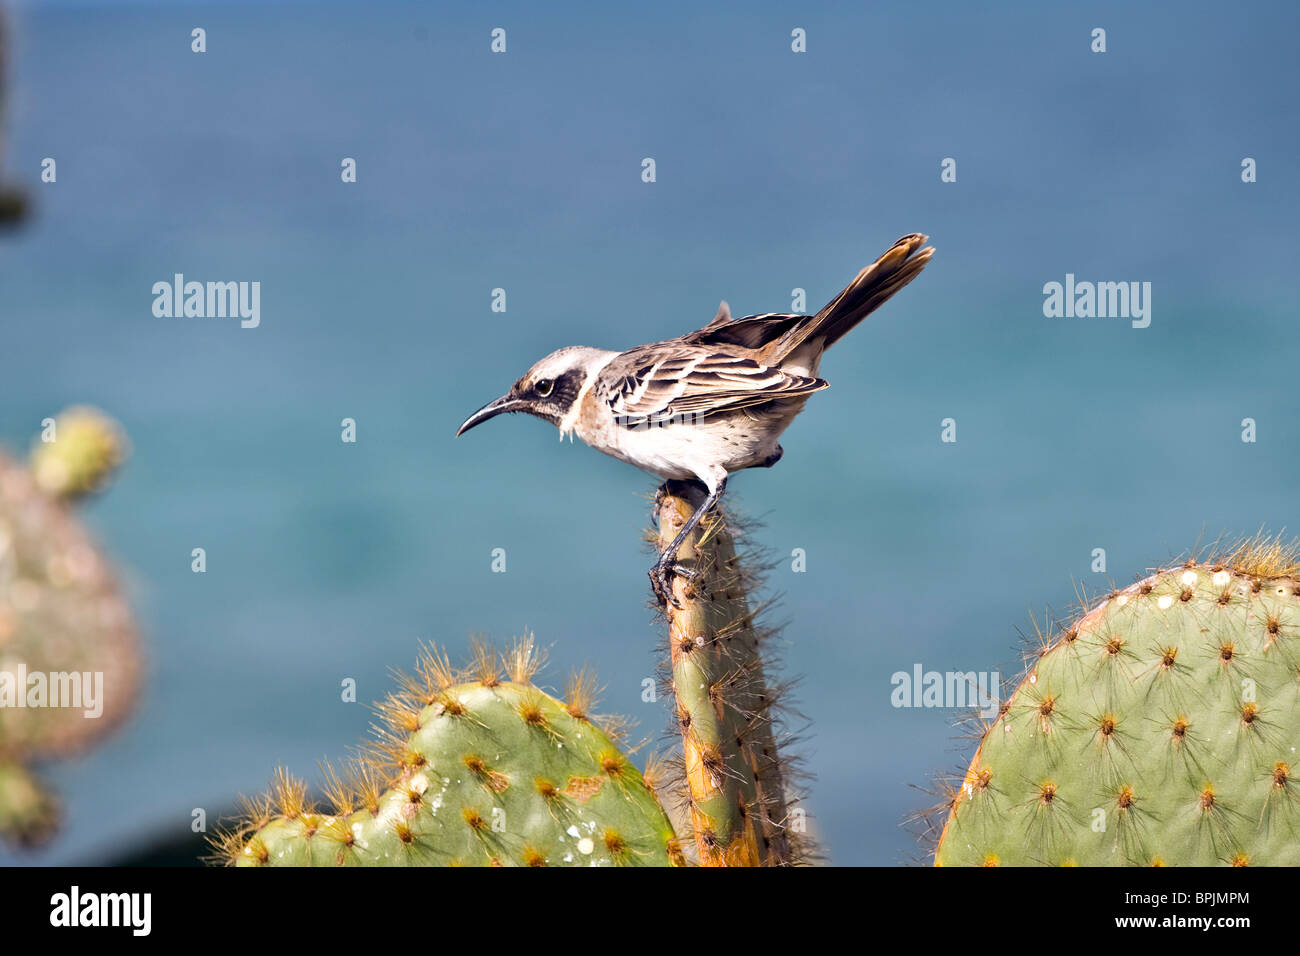 South America, Ecuador, Galapagos Islands, Chatham Mockingbird perched on Cactus on San Cristobal Island - Stock Image